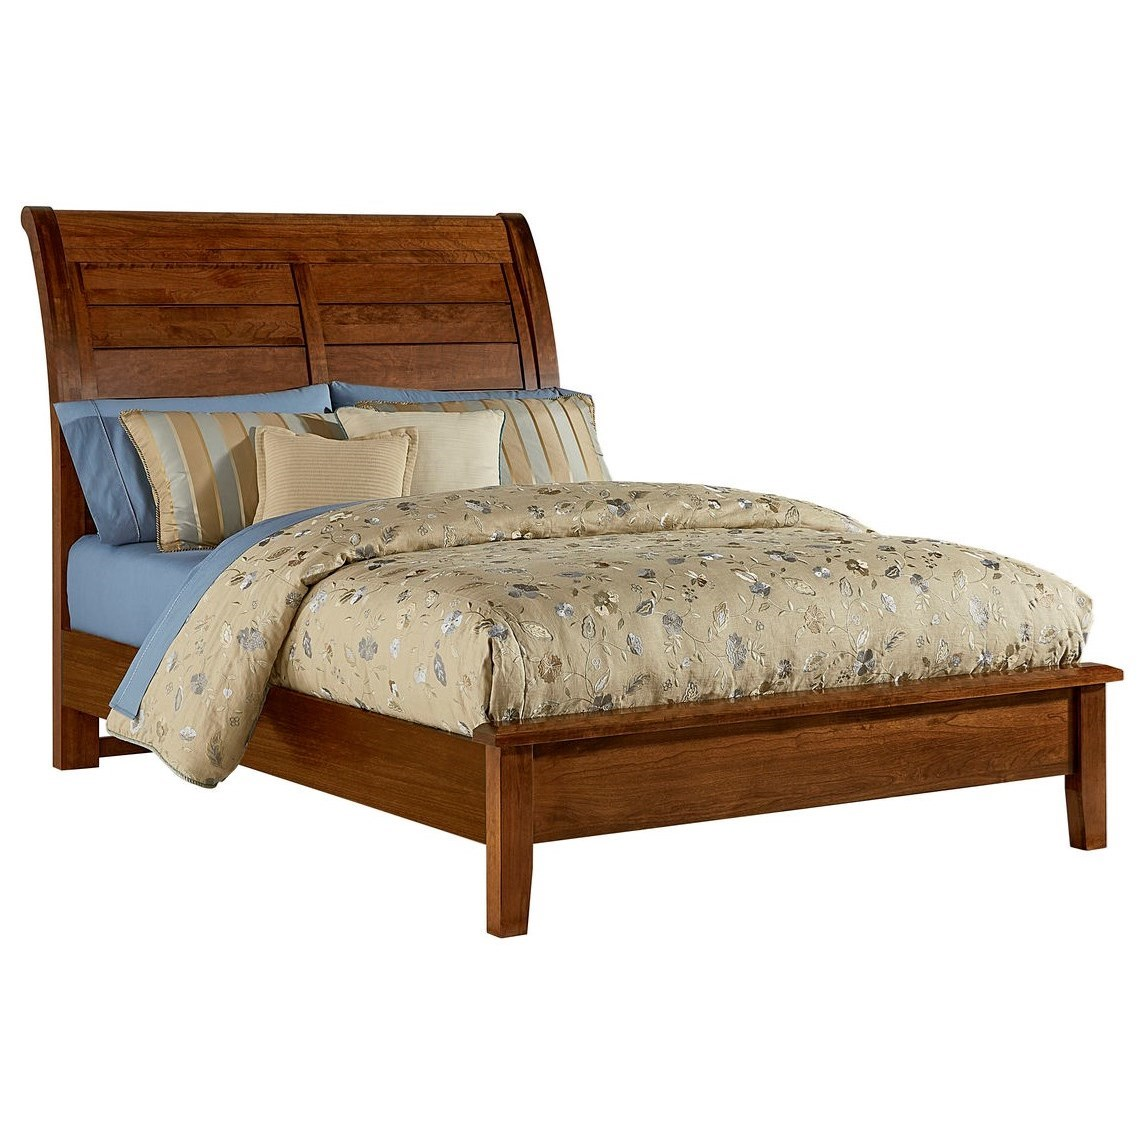 Artisan Choices Queen Sleigh Bed with Low Profile Footboard by Artisan & Post at Lapeer Furniture & Mattress Center